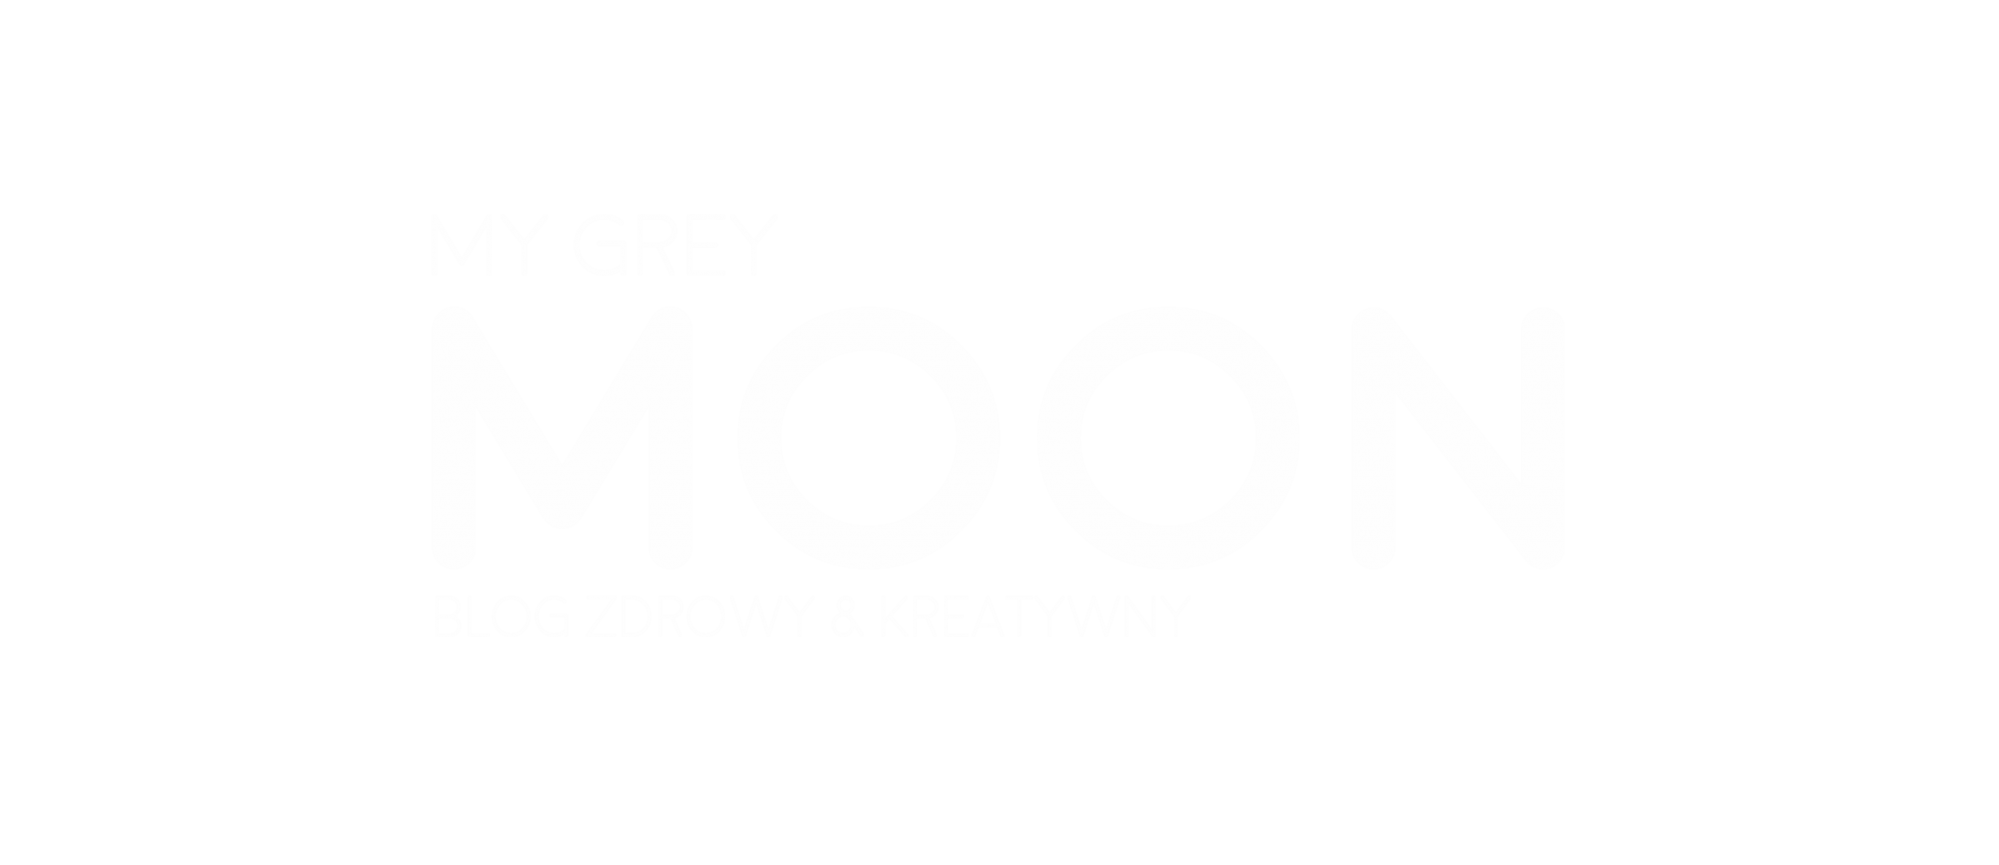 My Grey Moon!